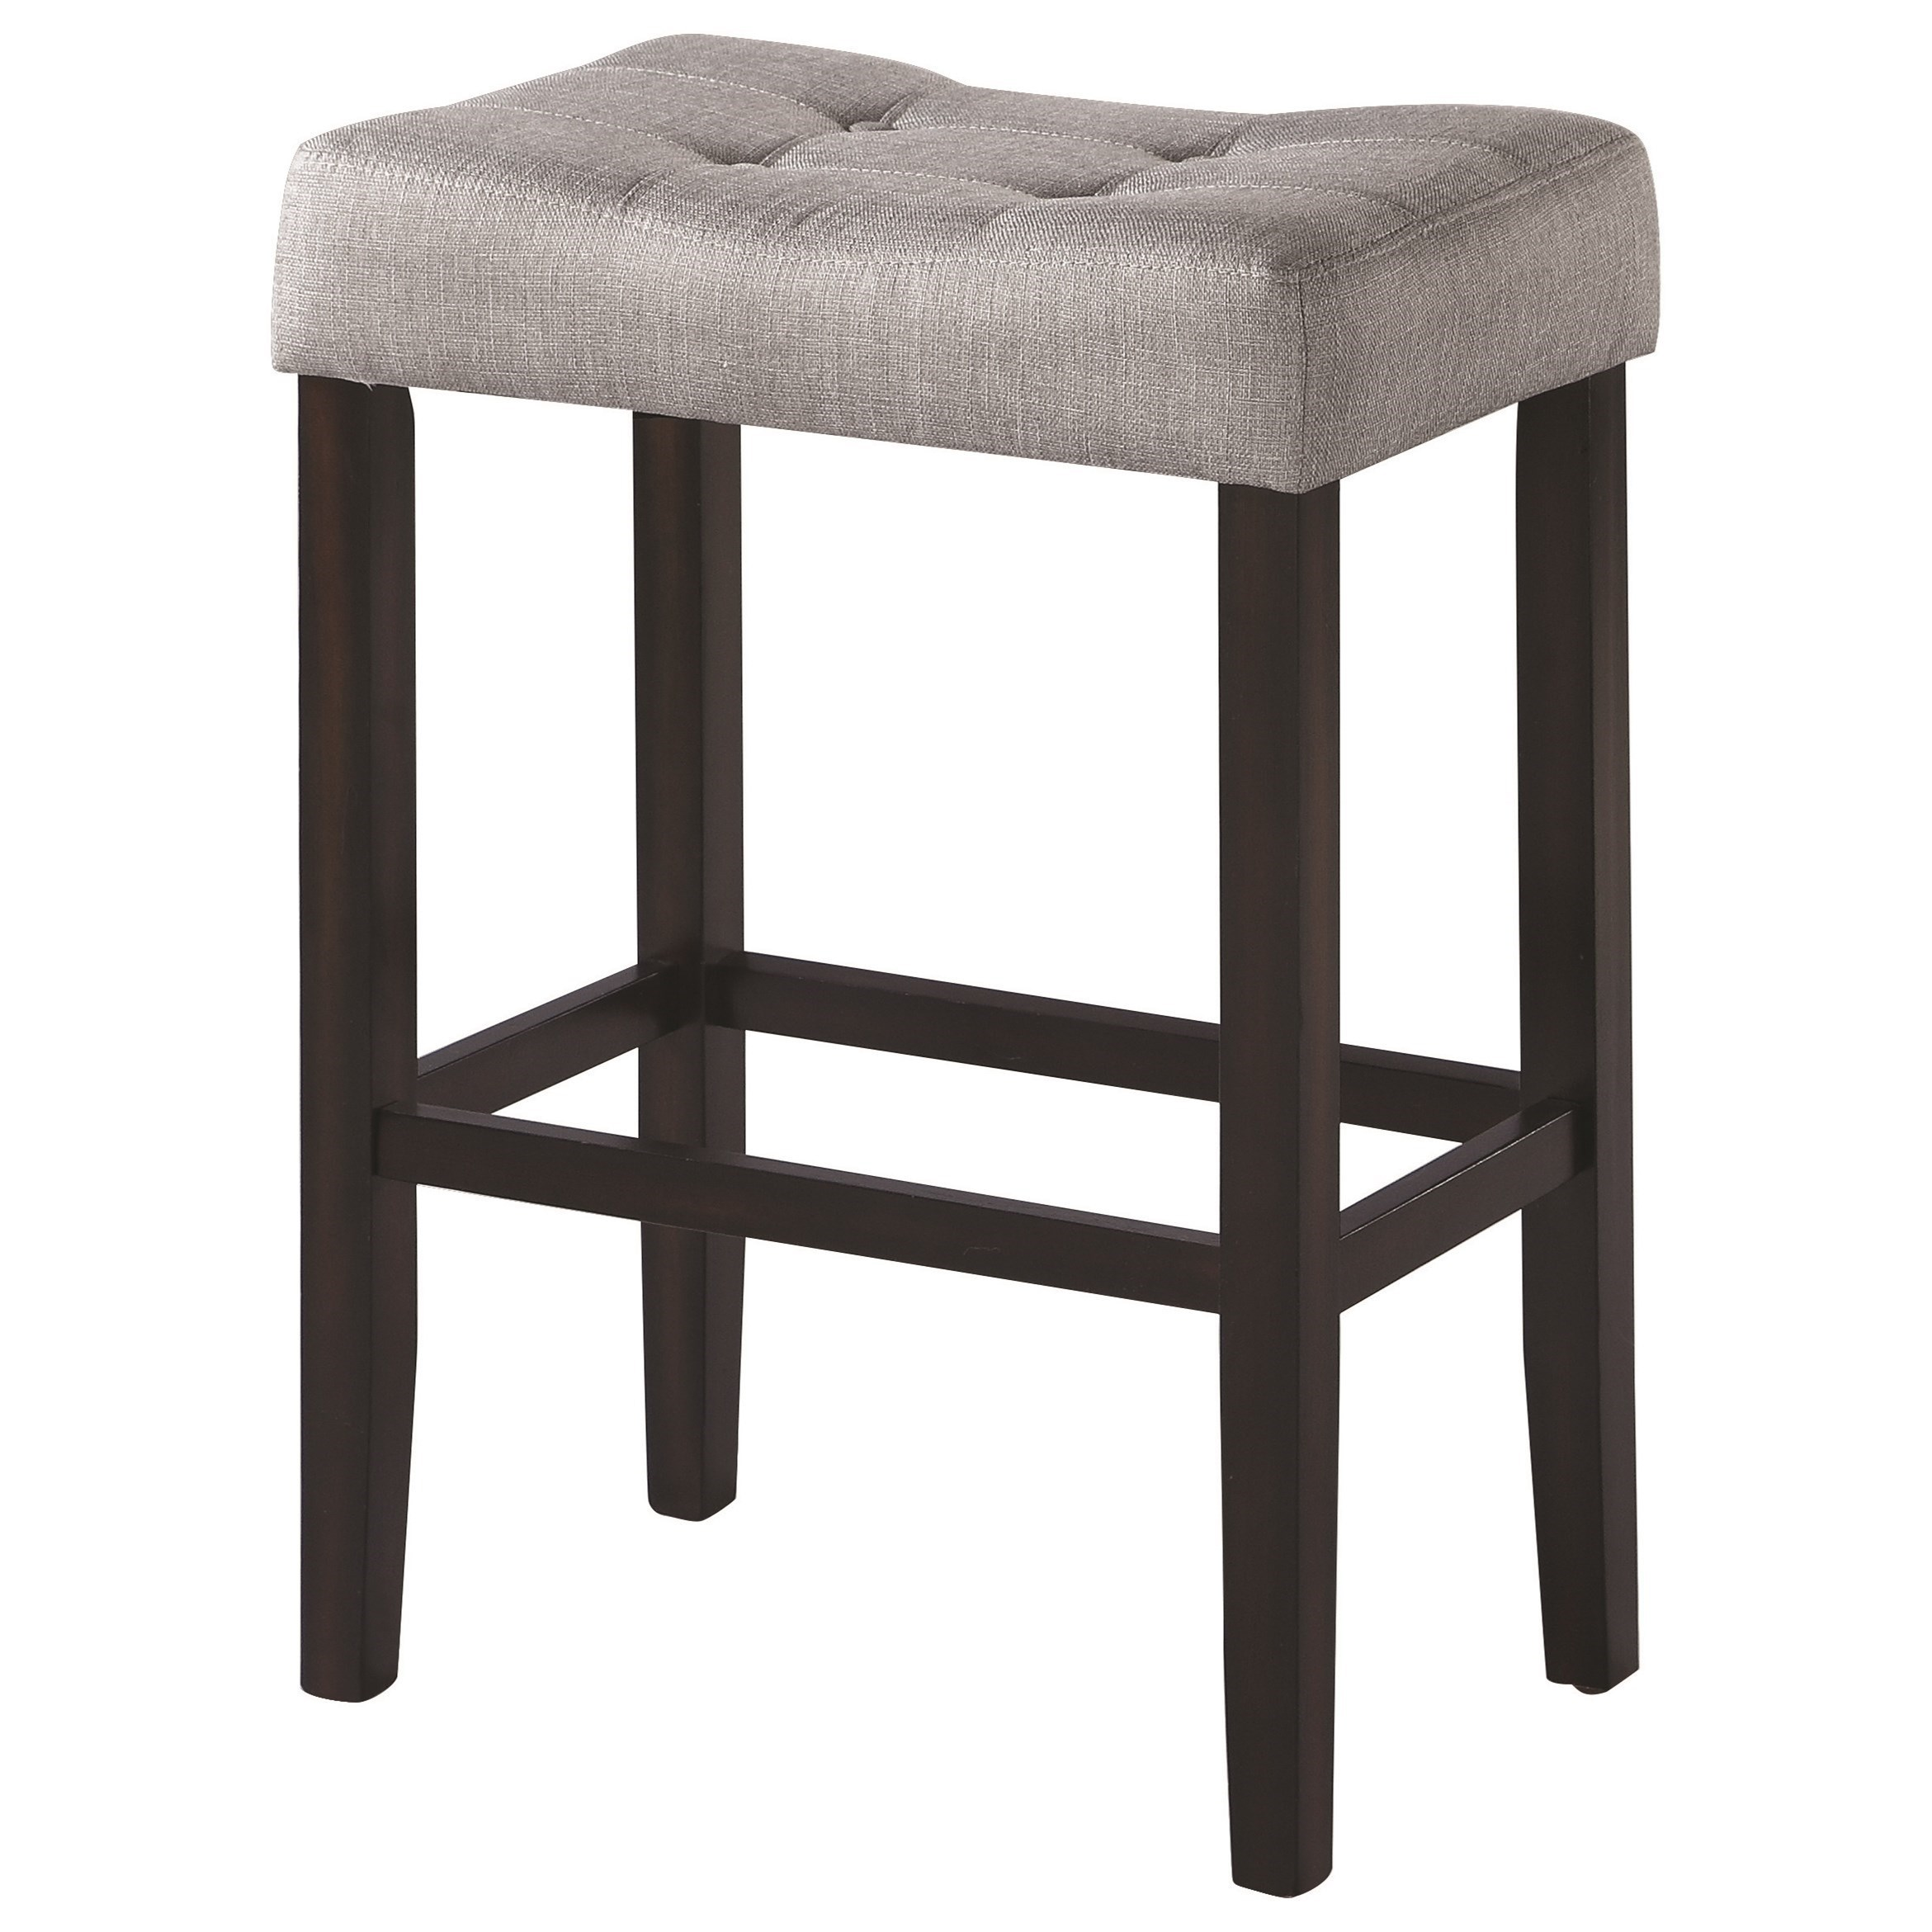 Upholstered Bar Chairs Dining Chairs And Bar Stools Upholstered Backless Bar Stool By Coaster At Value City Furniture